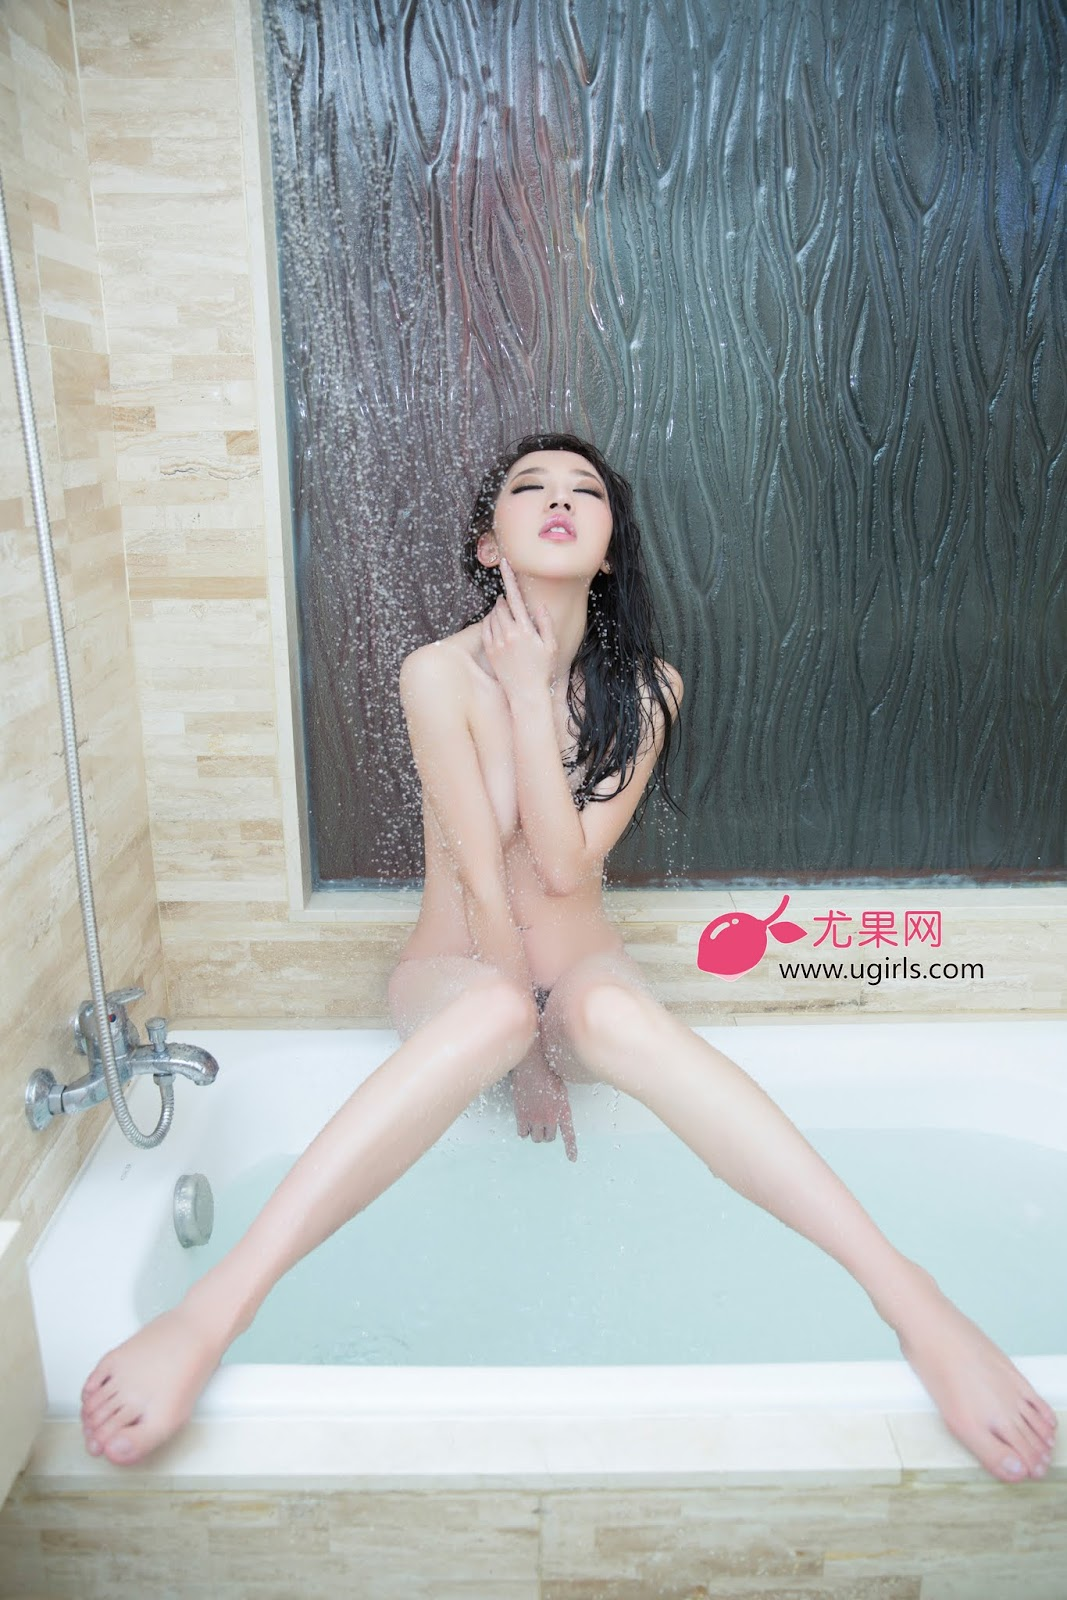 A14A5713 - Hot Model UGIRLS NO.8